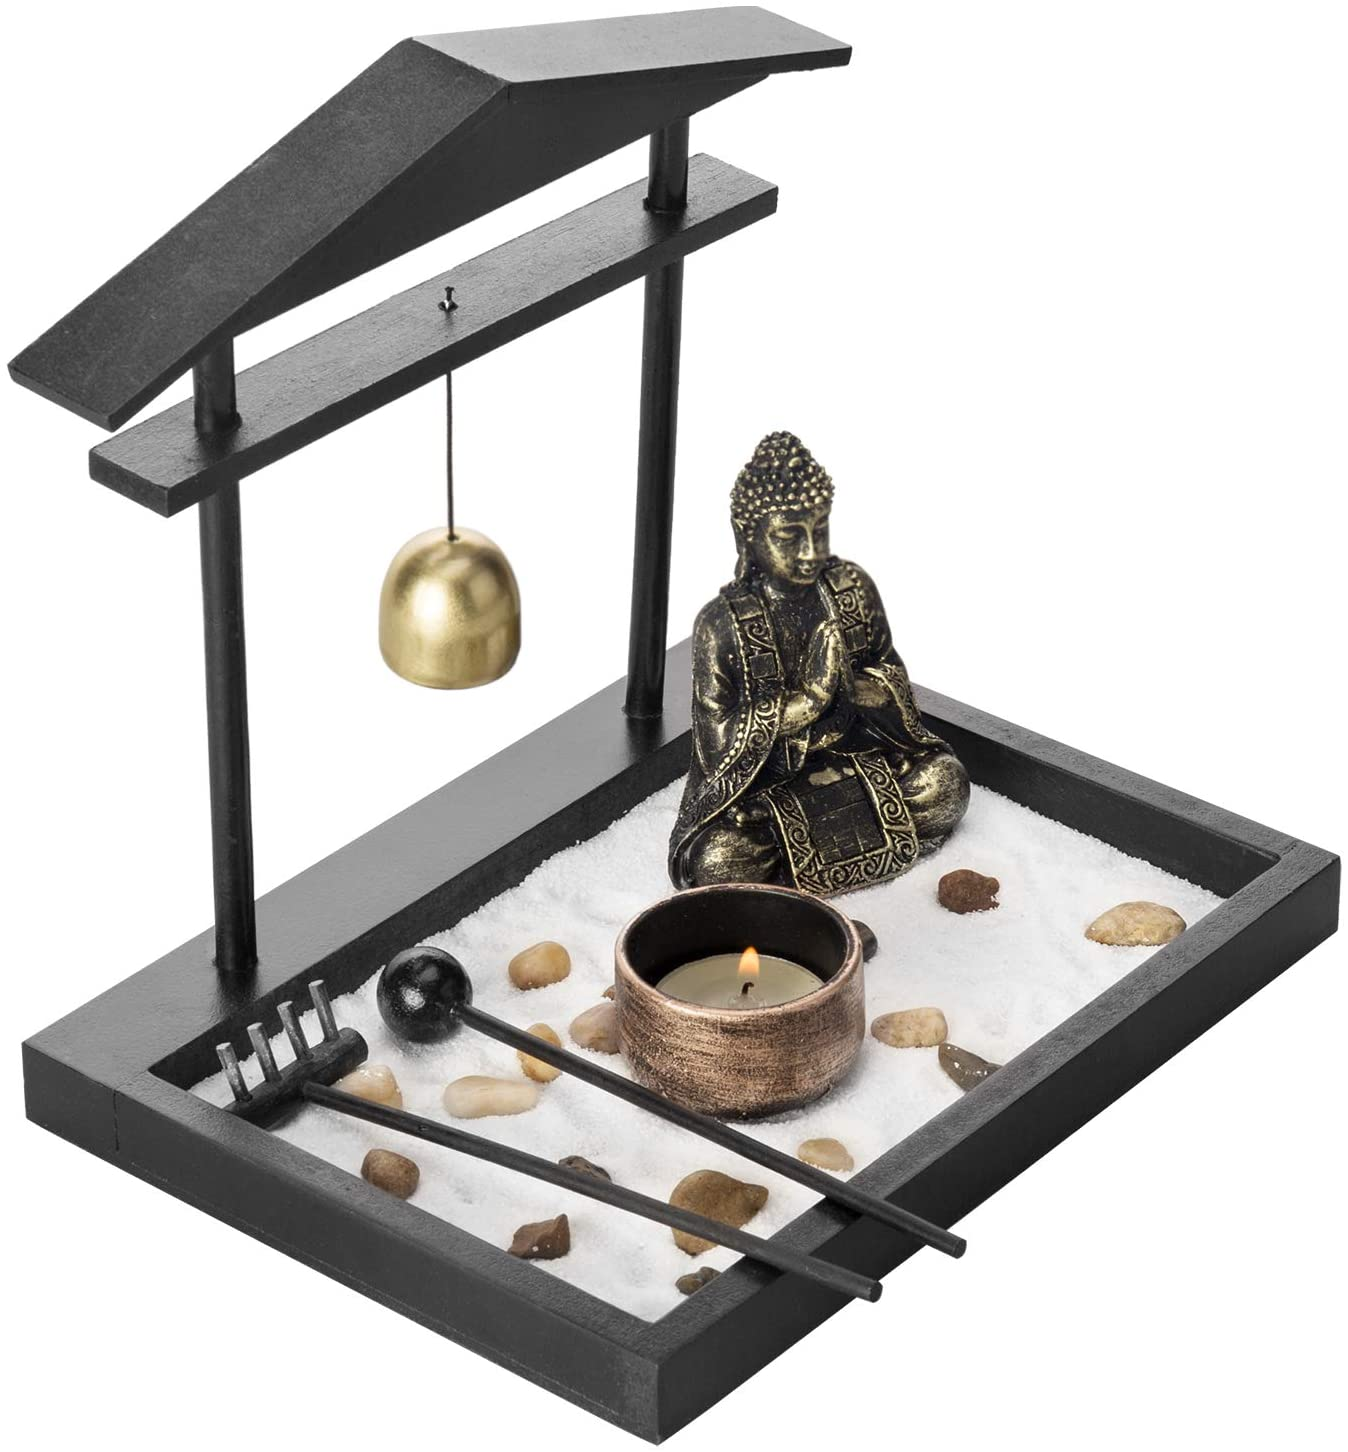 MyGift Mini Zen Sand Garden Set with Buddha Statue, Bell, Rake, Candle Holder & Tray